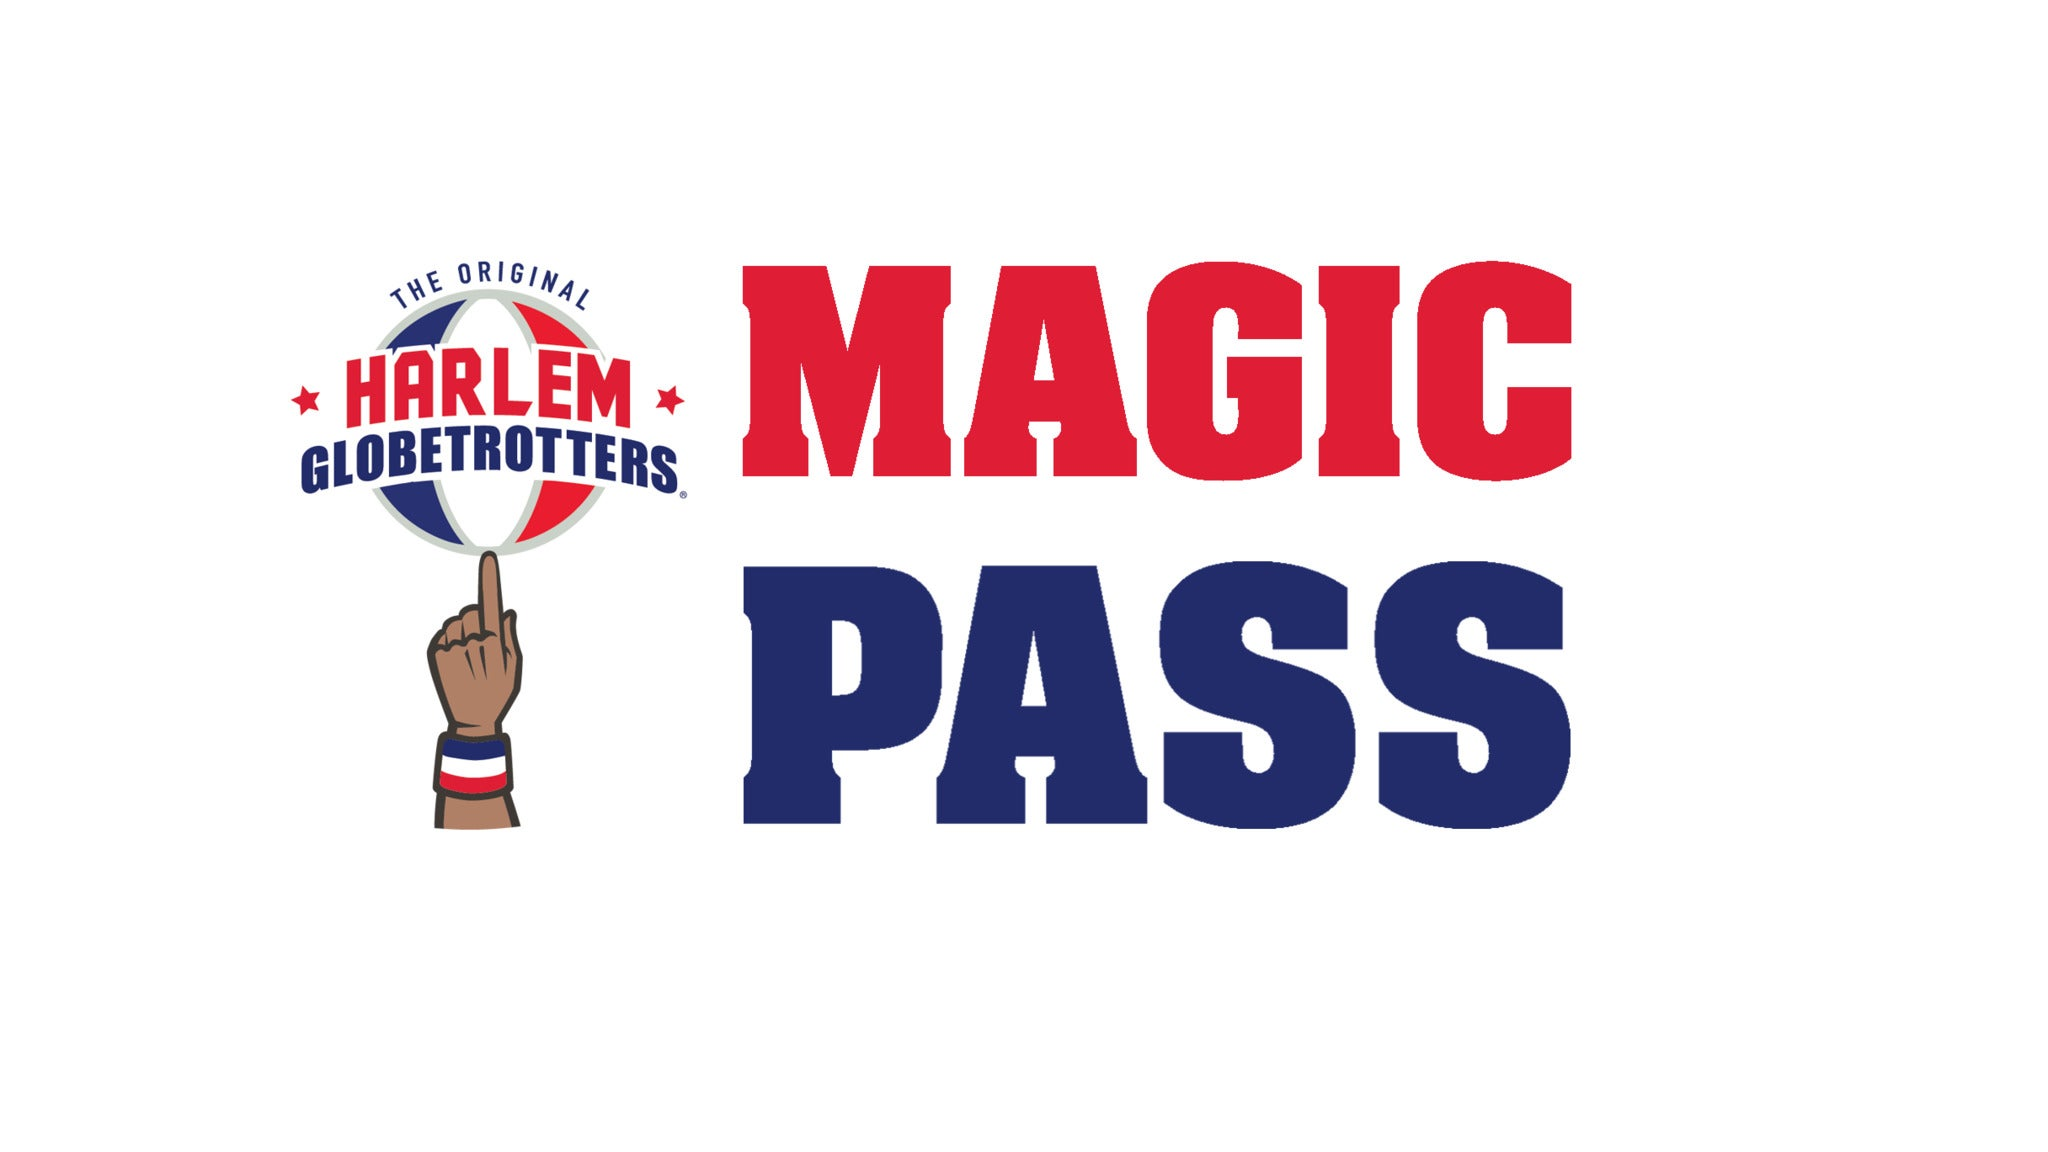 Magic Pass: 30-minute interactive event from 12:30 PM-1:00 PM